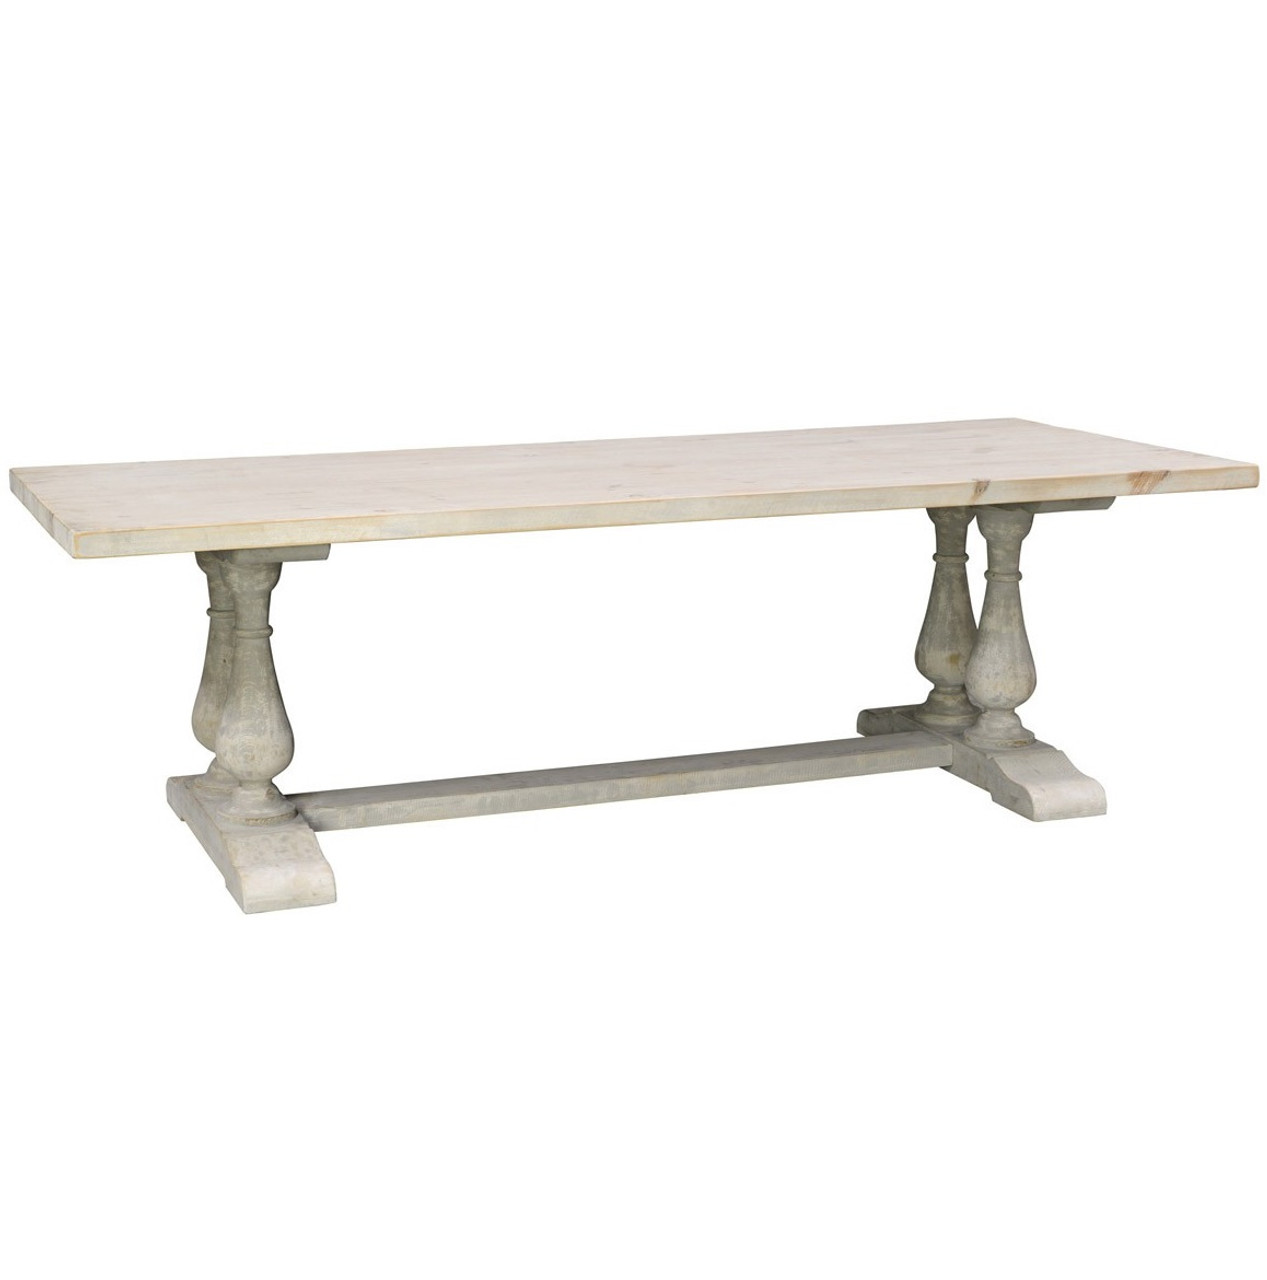 Chateau Reclaimed Wood Double Trestle Dining Table Zin Home - Double trestle dining table